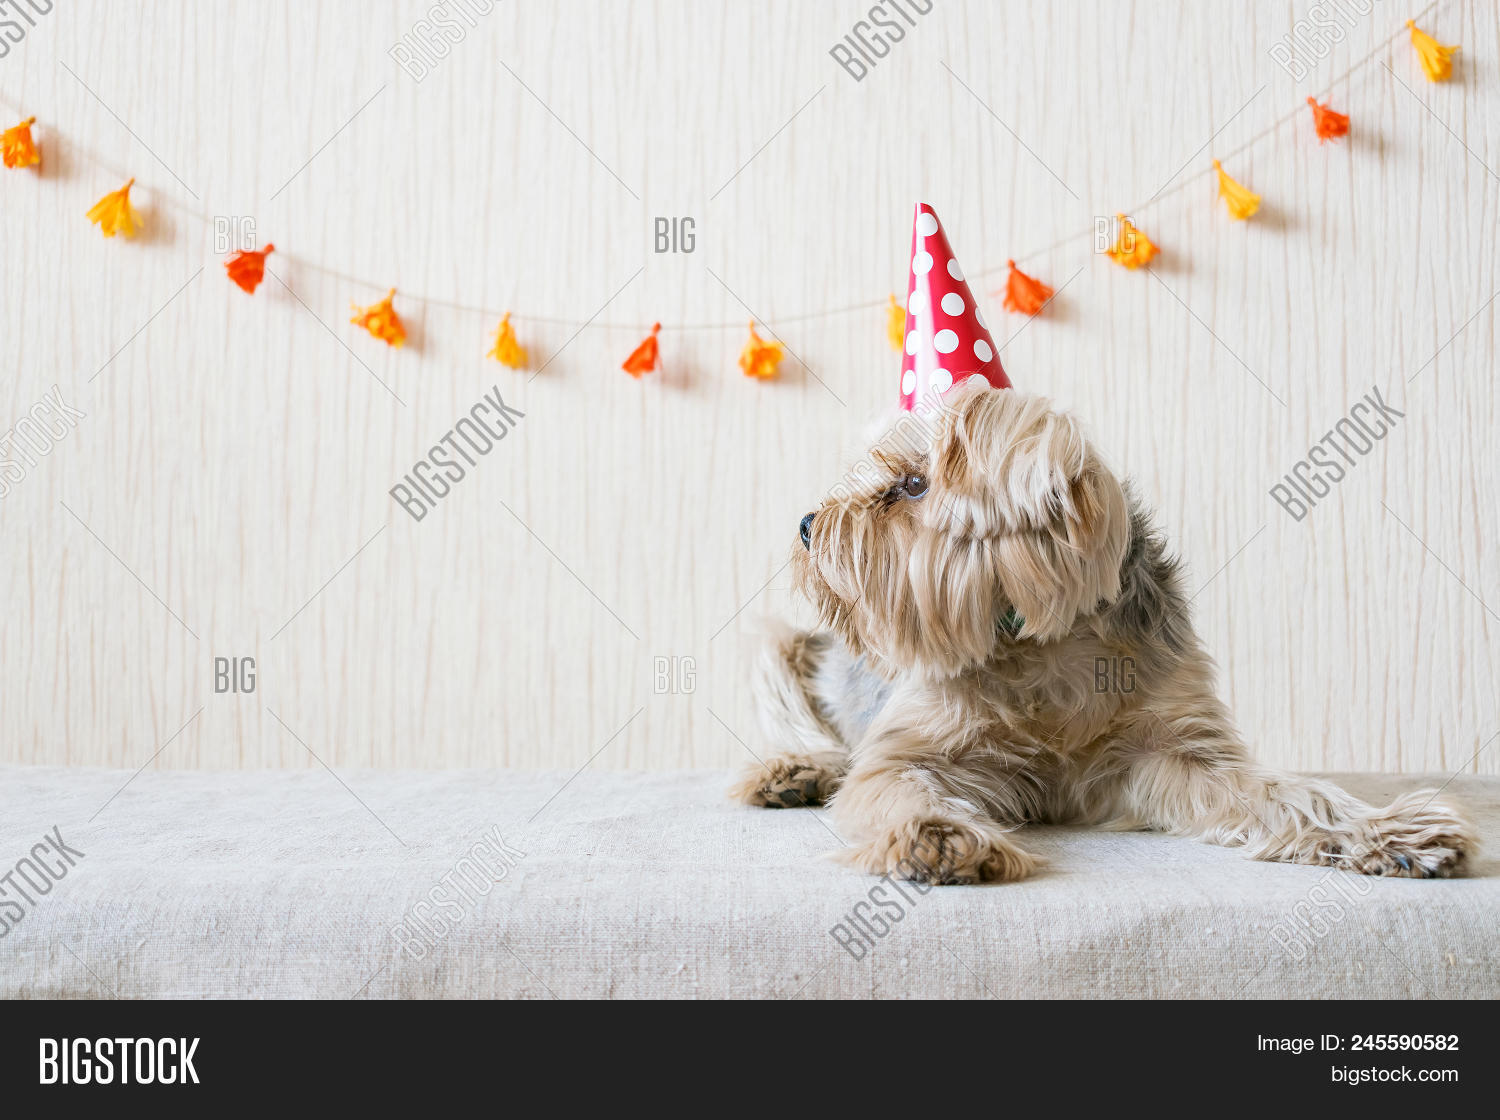 Funny Cute Yorkshire Image Photo Free Trial Bigstock